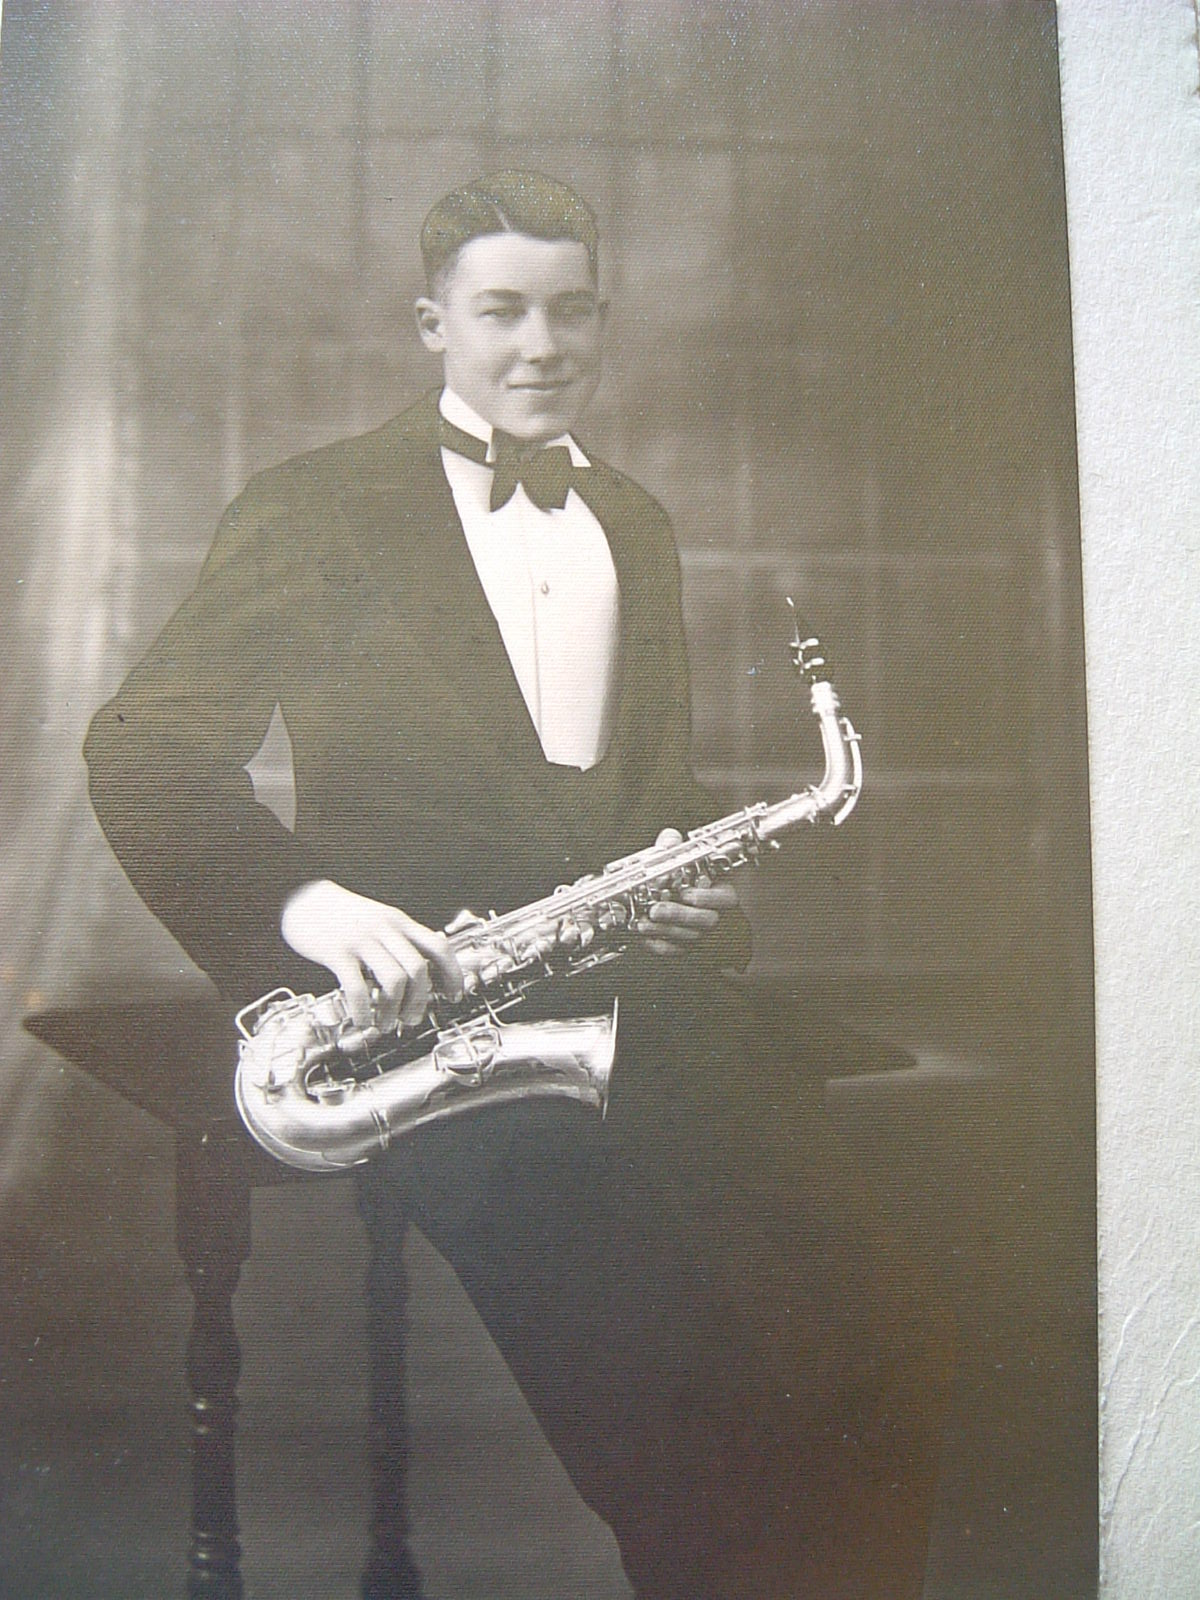 RSB as saxophone player in a local jazz band - early 1930s